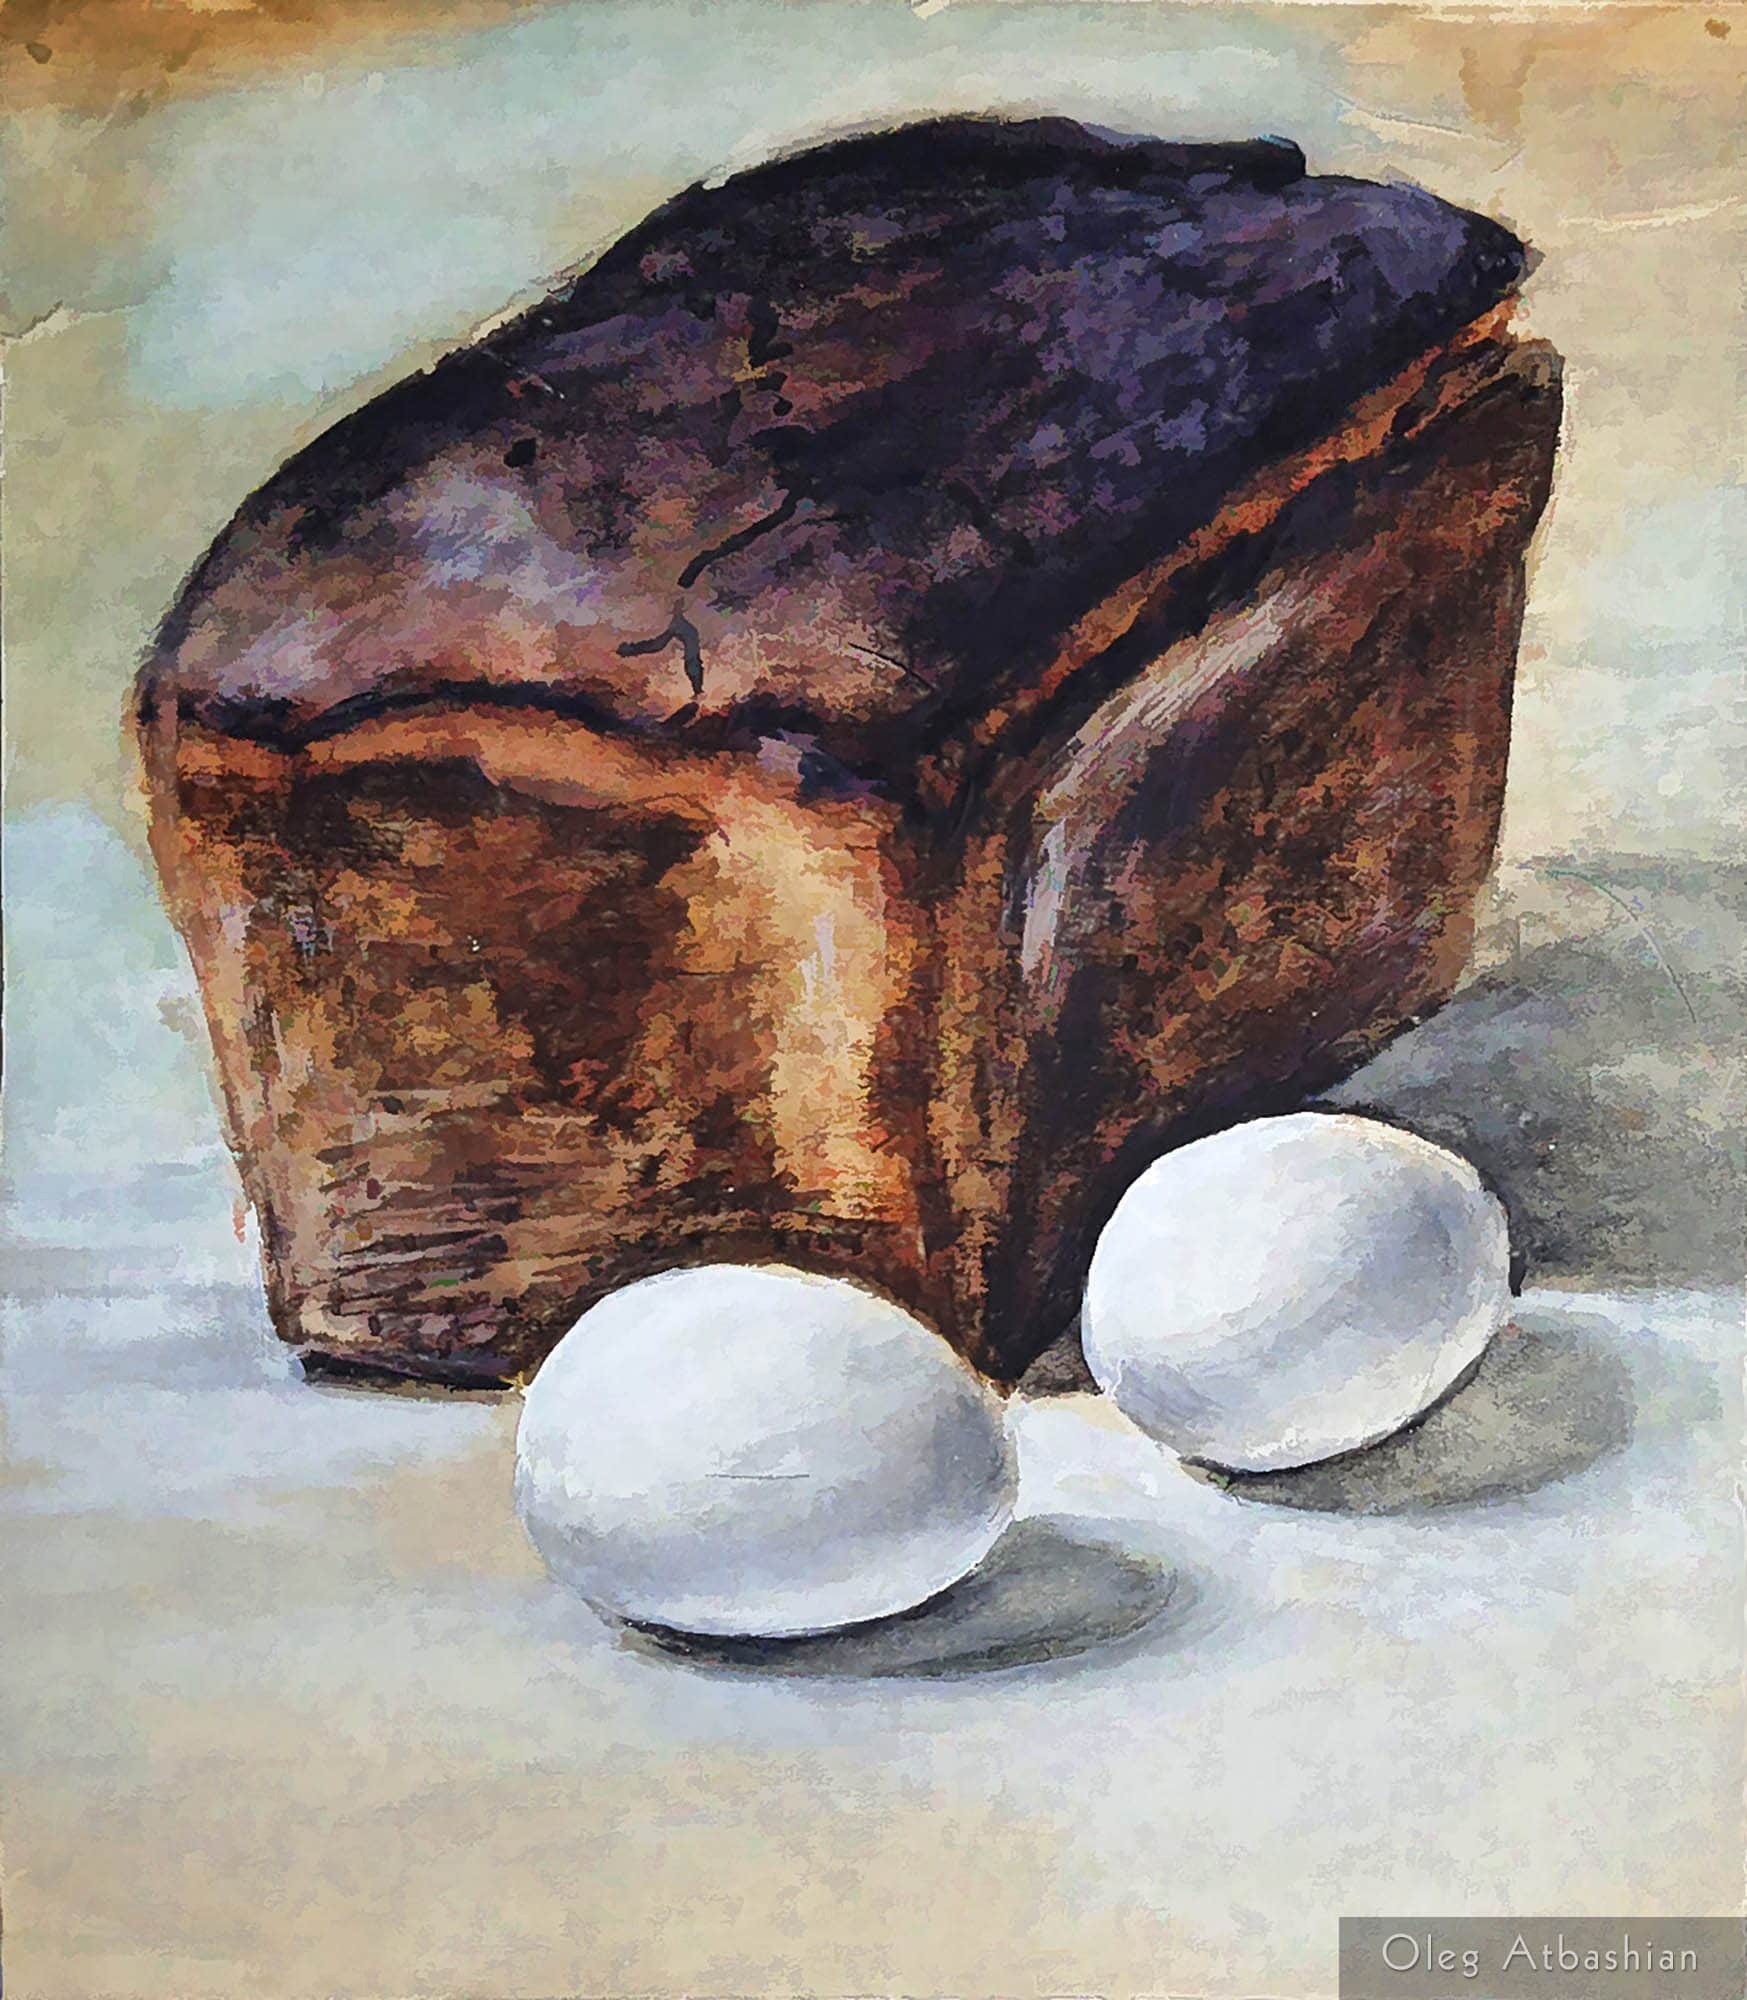 Still life: Black Bread and Boiled Eggs - a student's meal